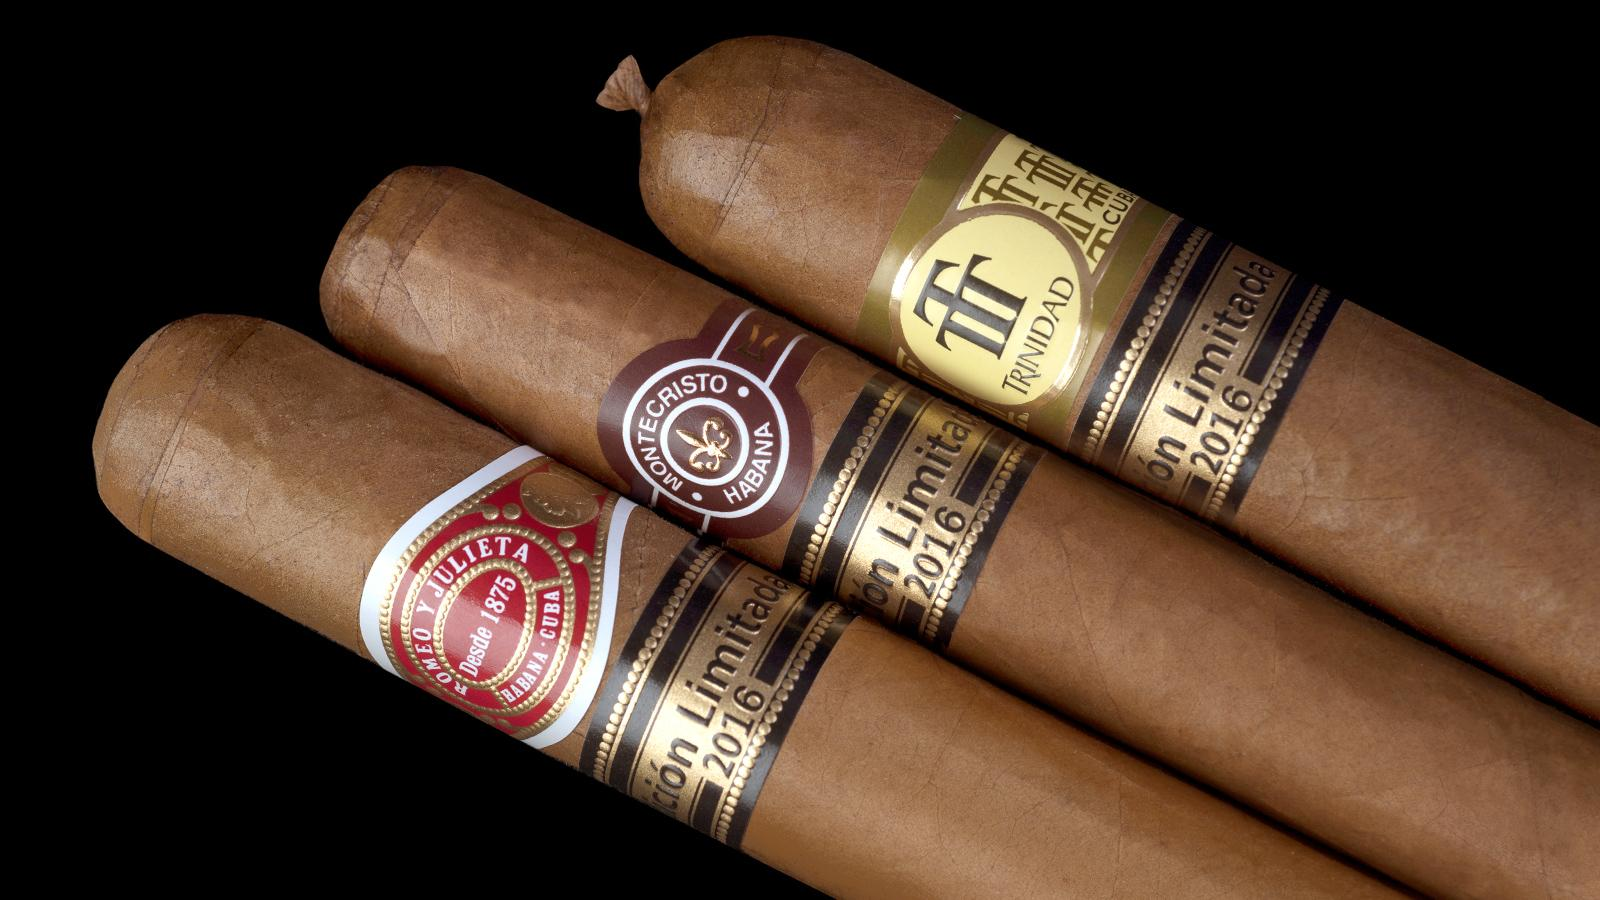 2016 Edición Limitada cigars: Romeo y Julieta Capuletos (left), Montecristo Dantes (center), and Trinidad Topes (right).